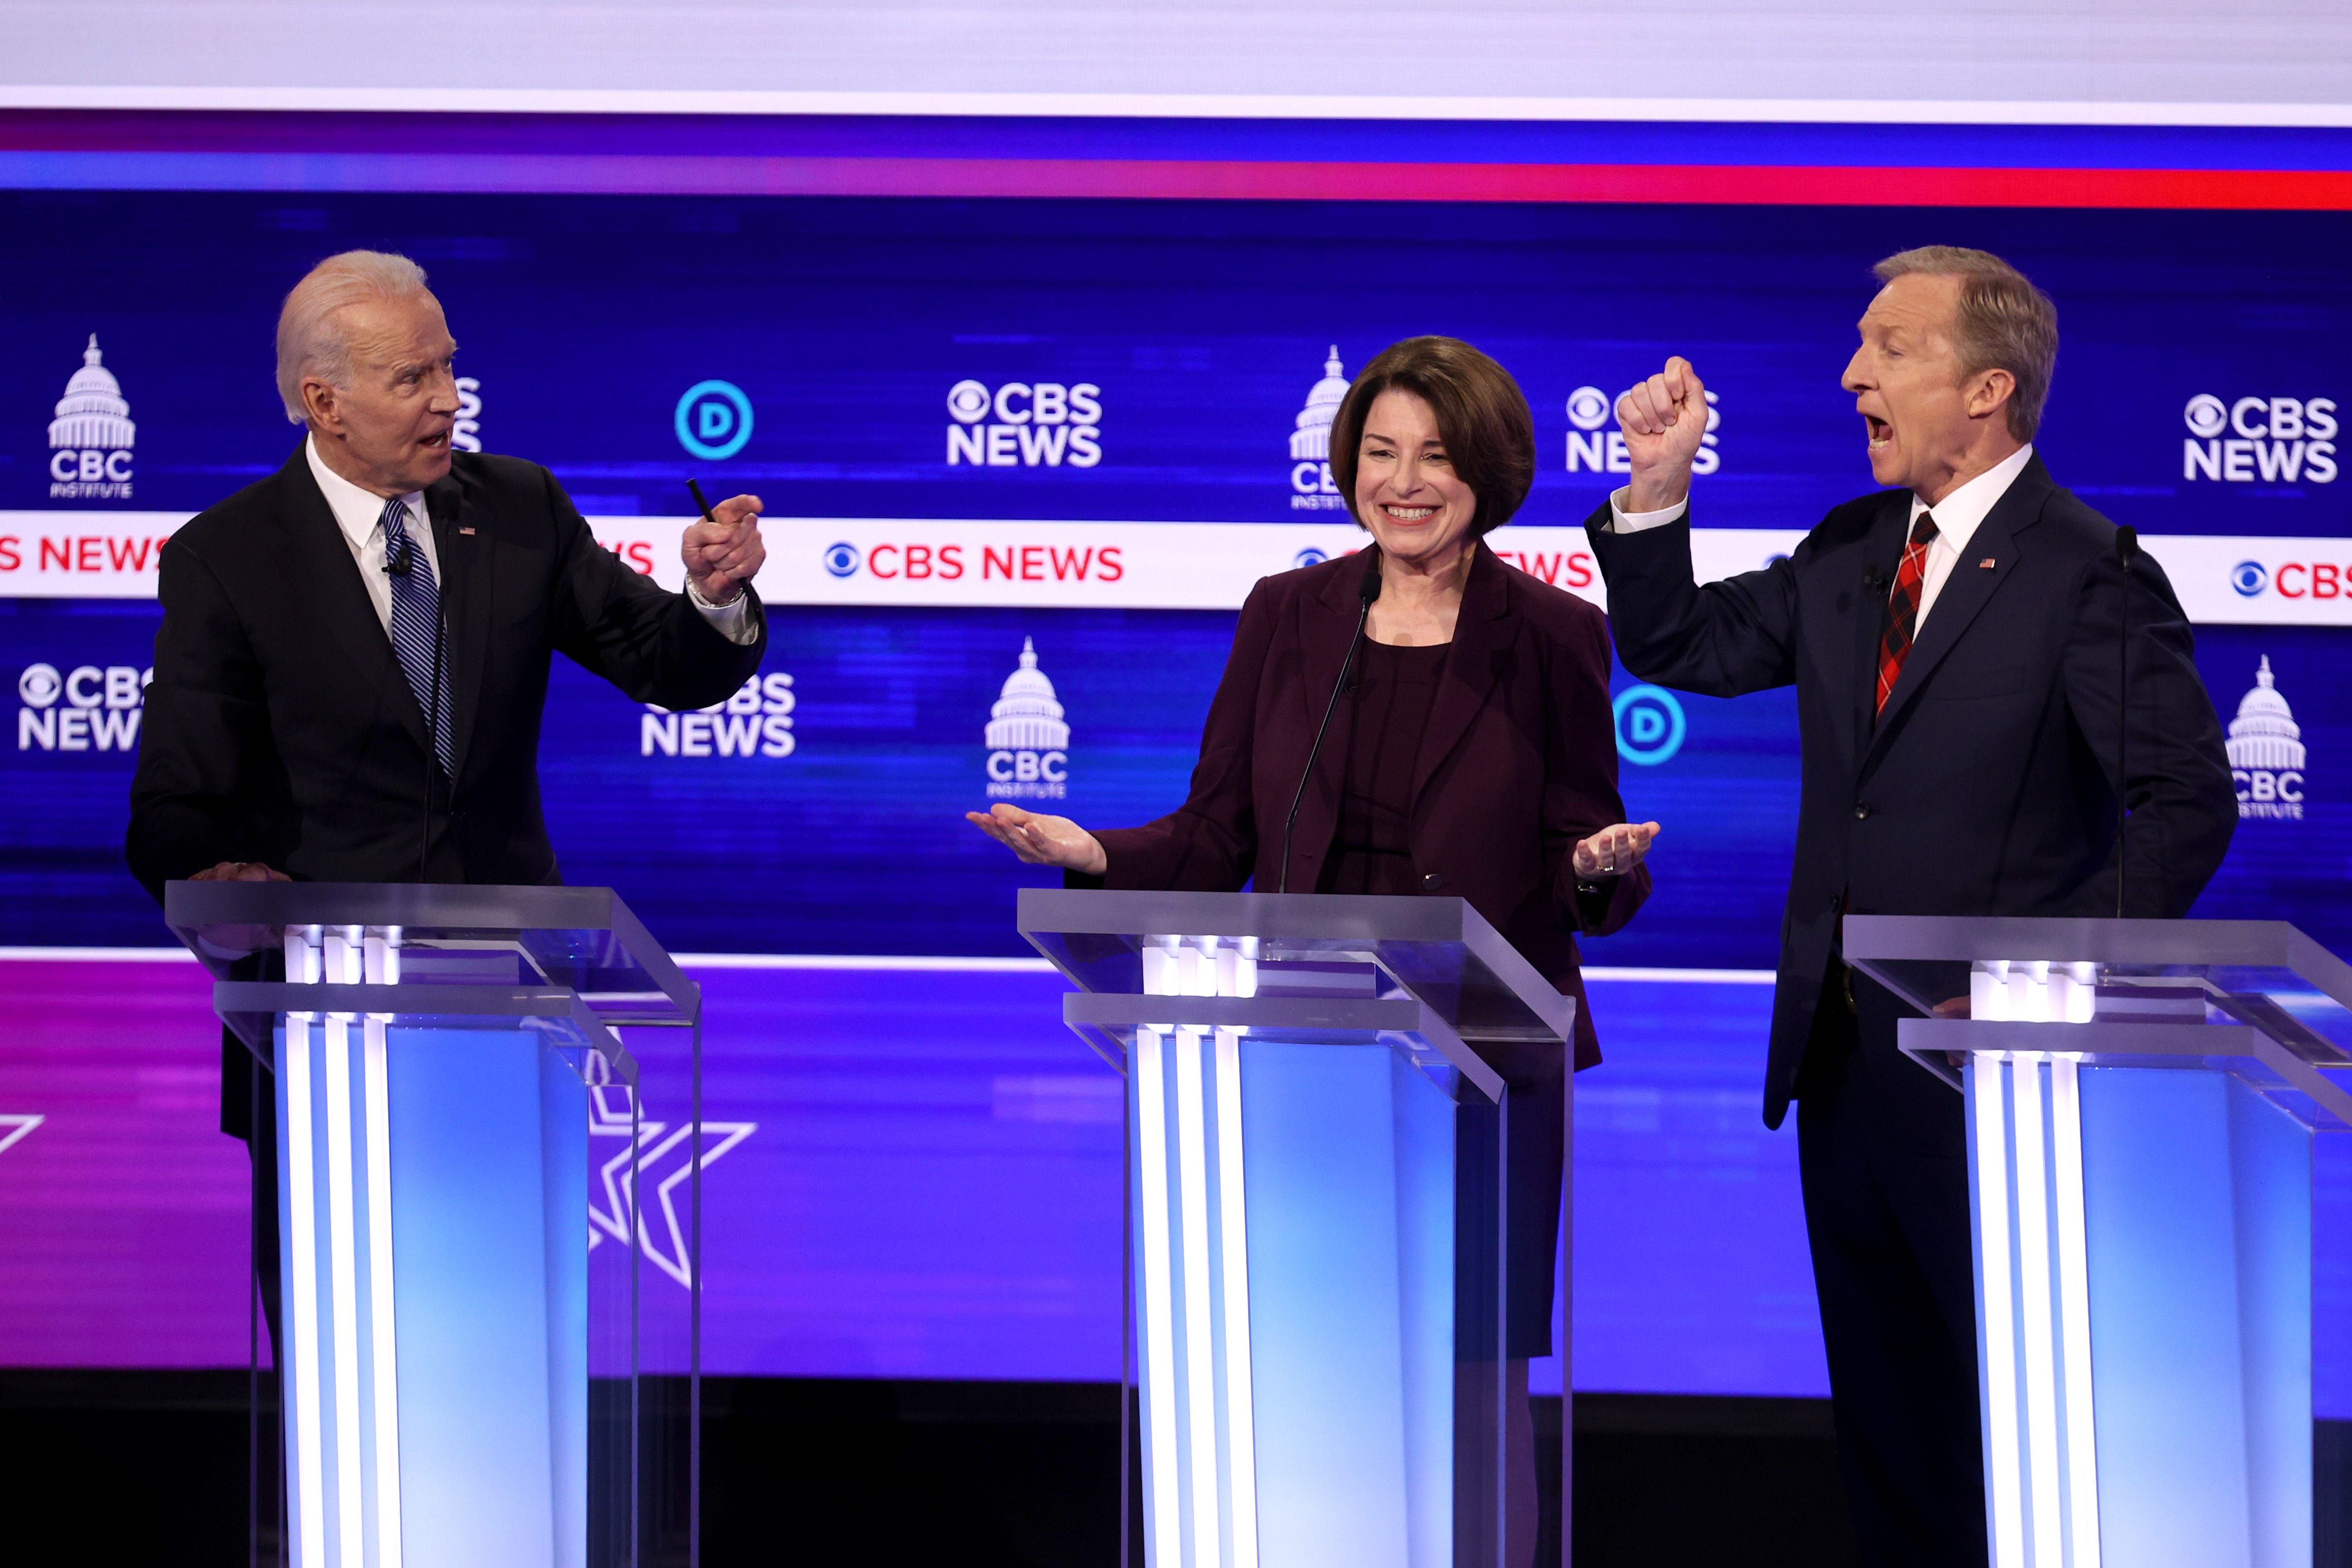 Hearing my name mentioned a little bit : Sanders plays defense and other moments from the South Carolina Democratic debate